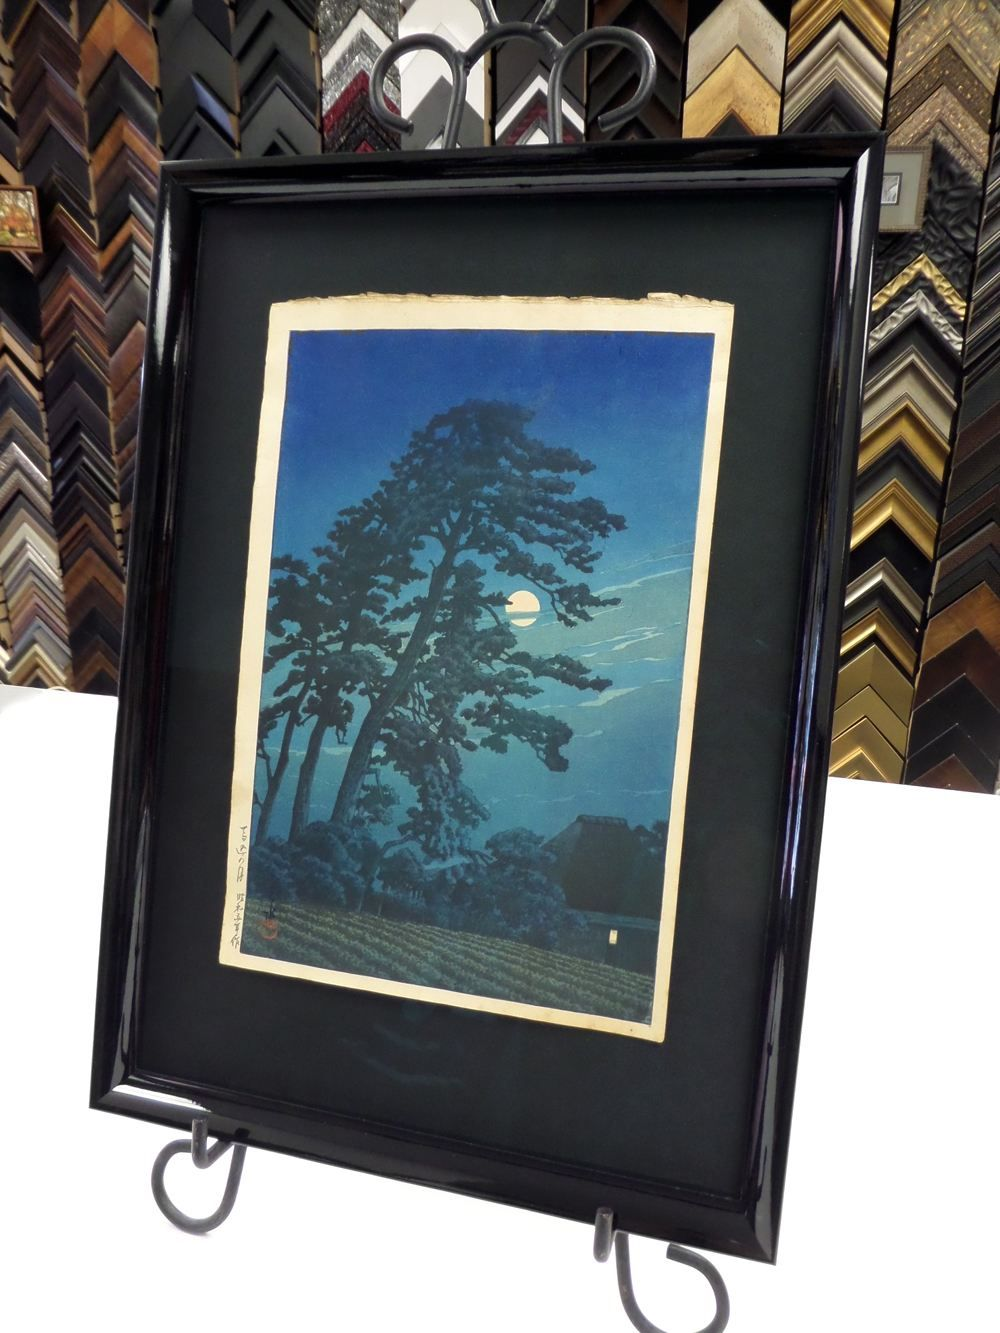 photo of a tree framed in black